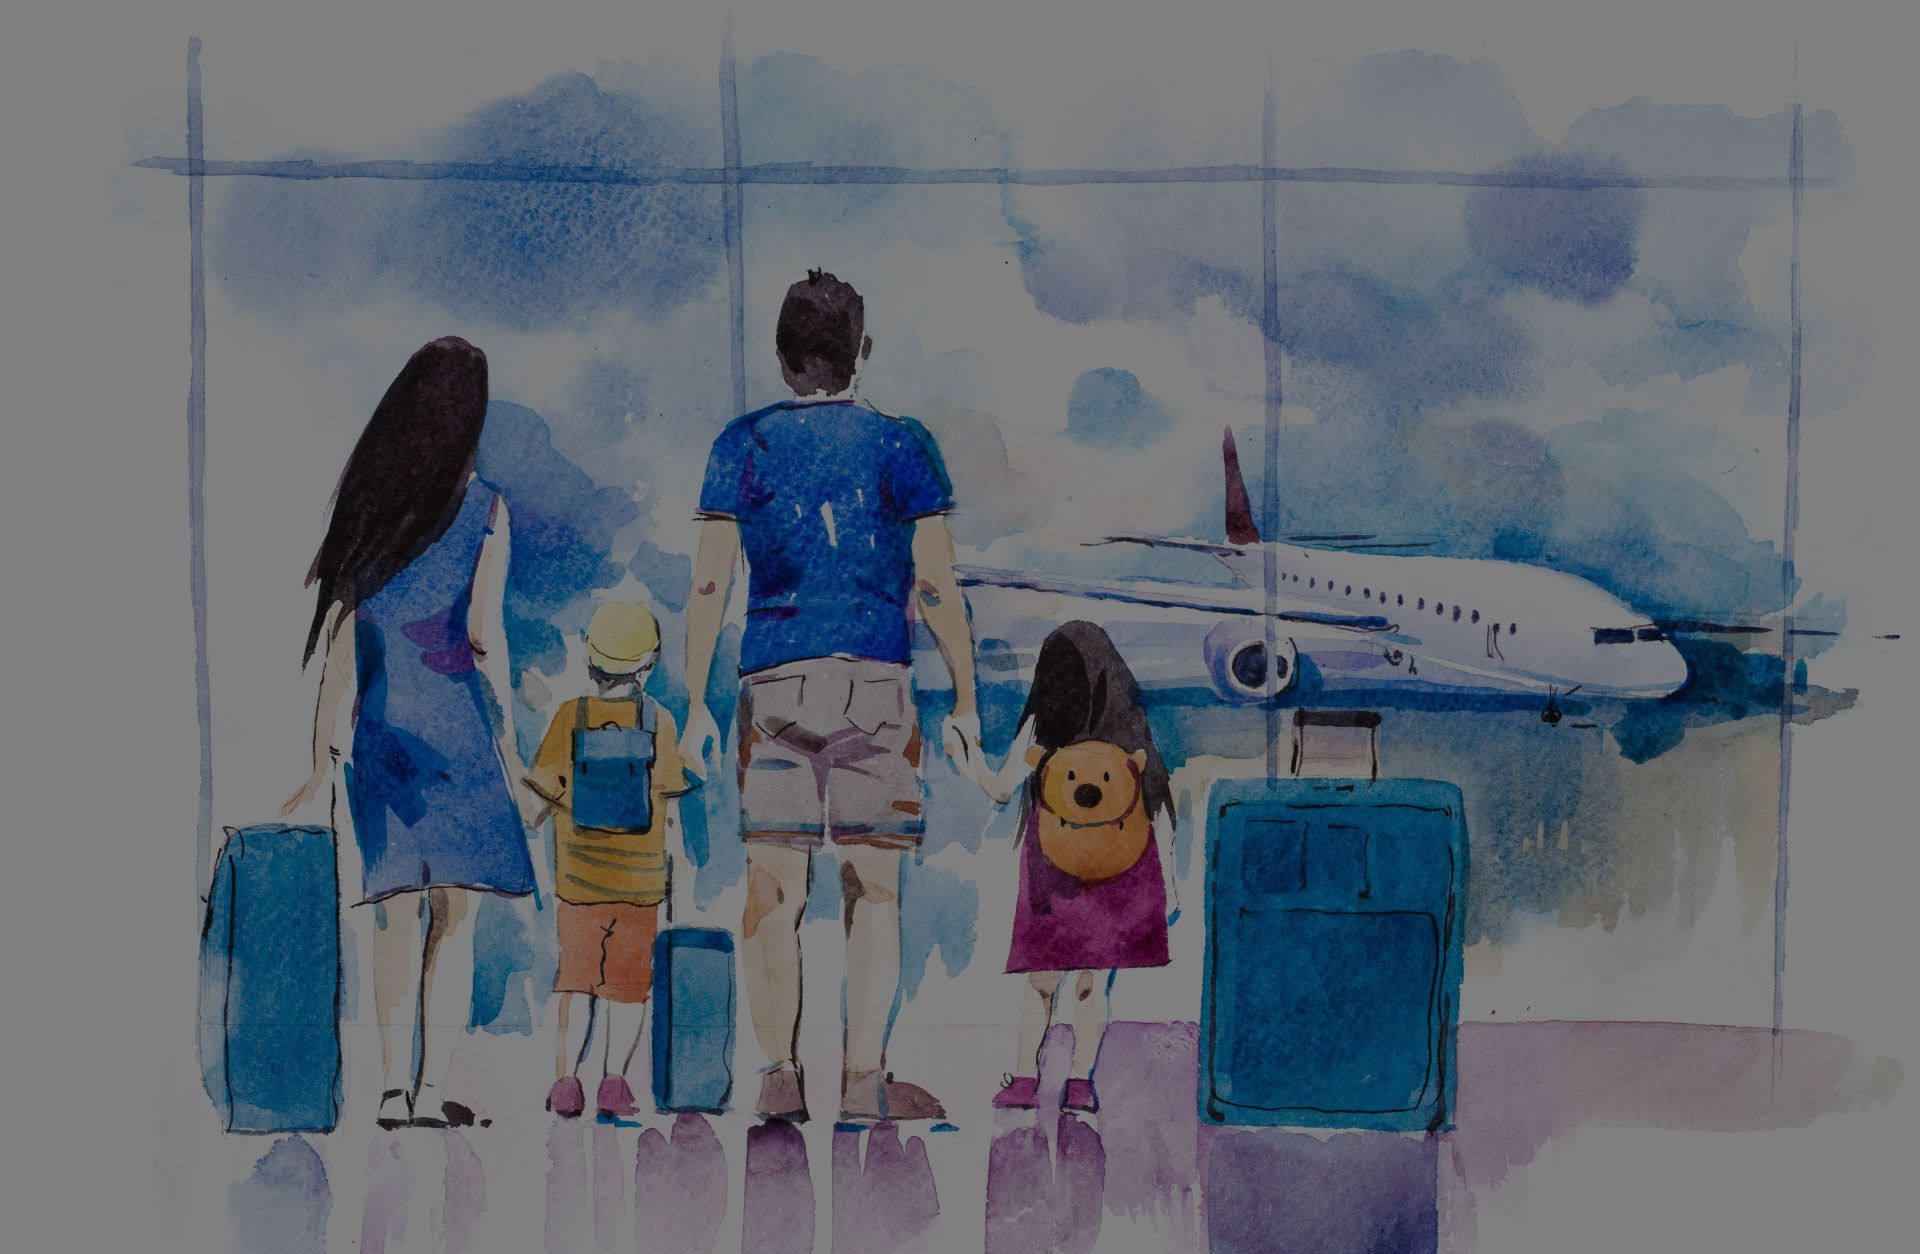 Dependent Visa - Visa Options to Bring or join Family.